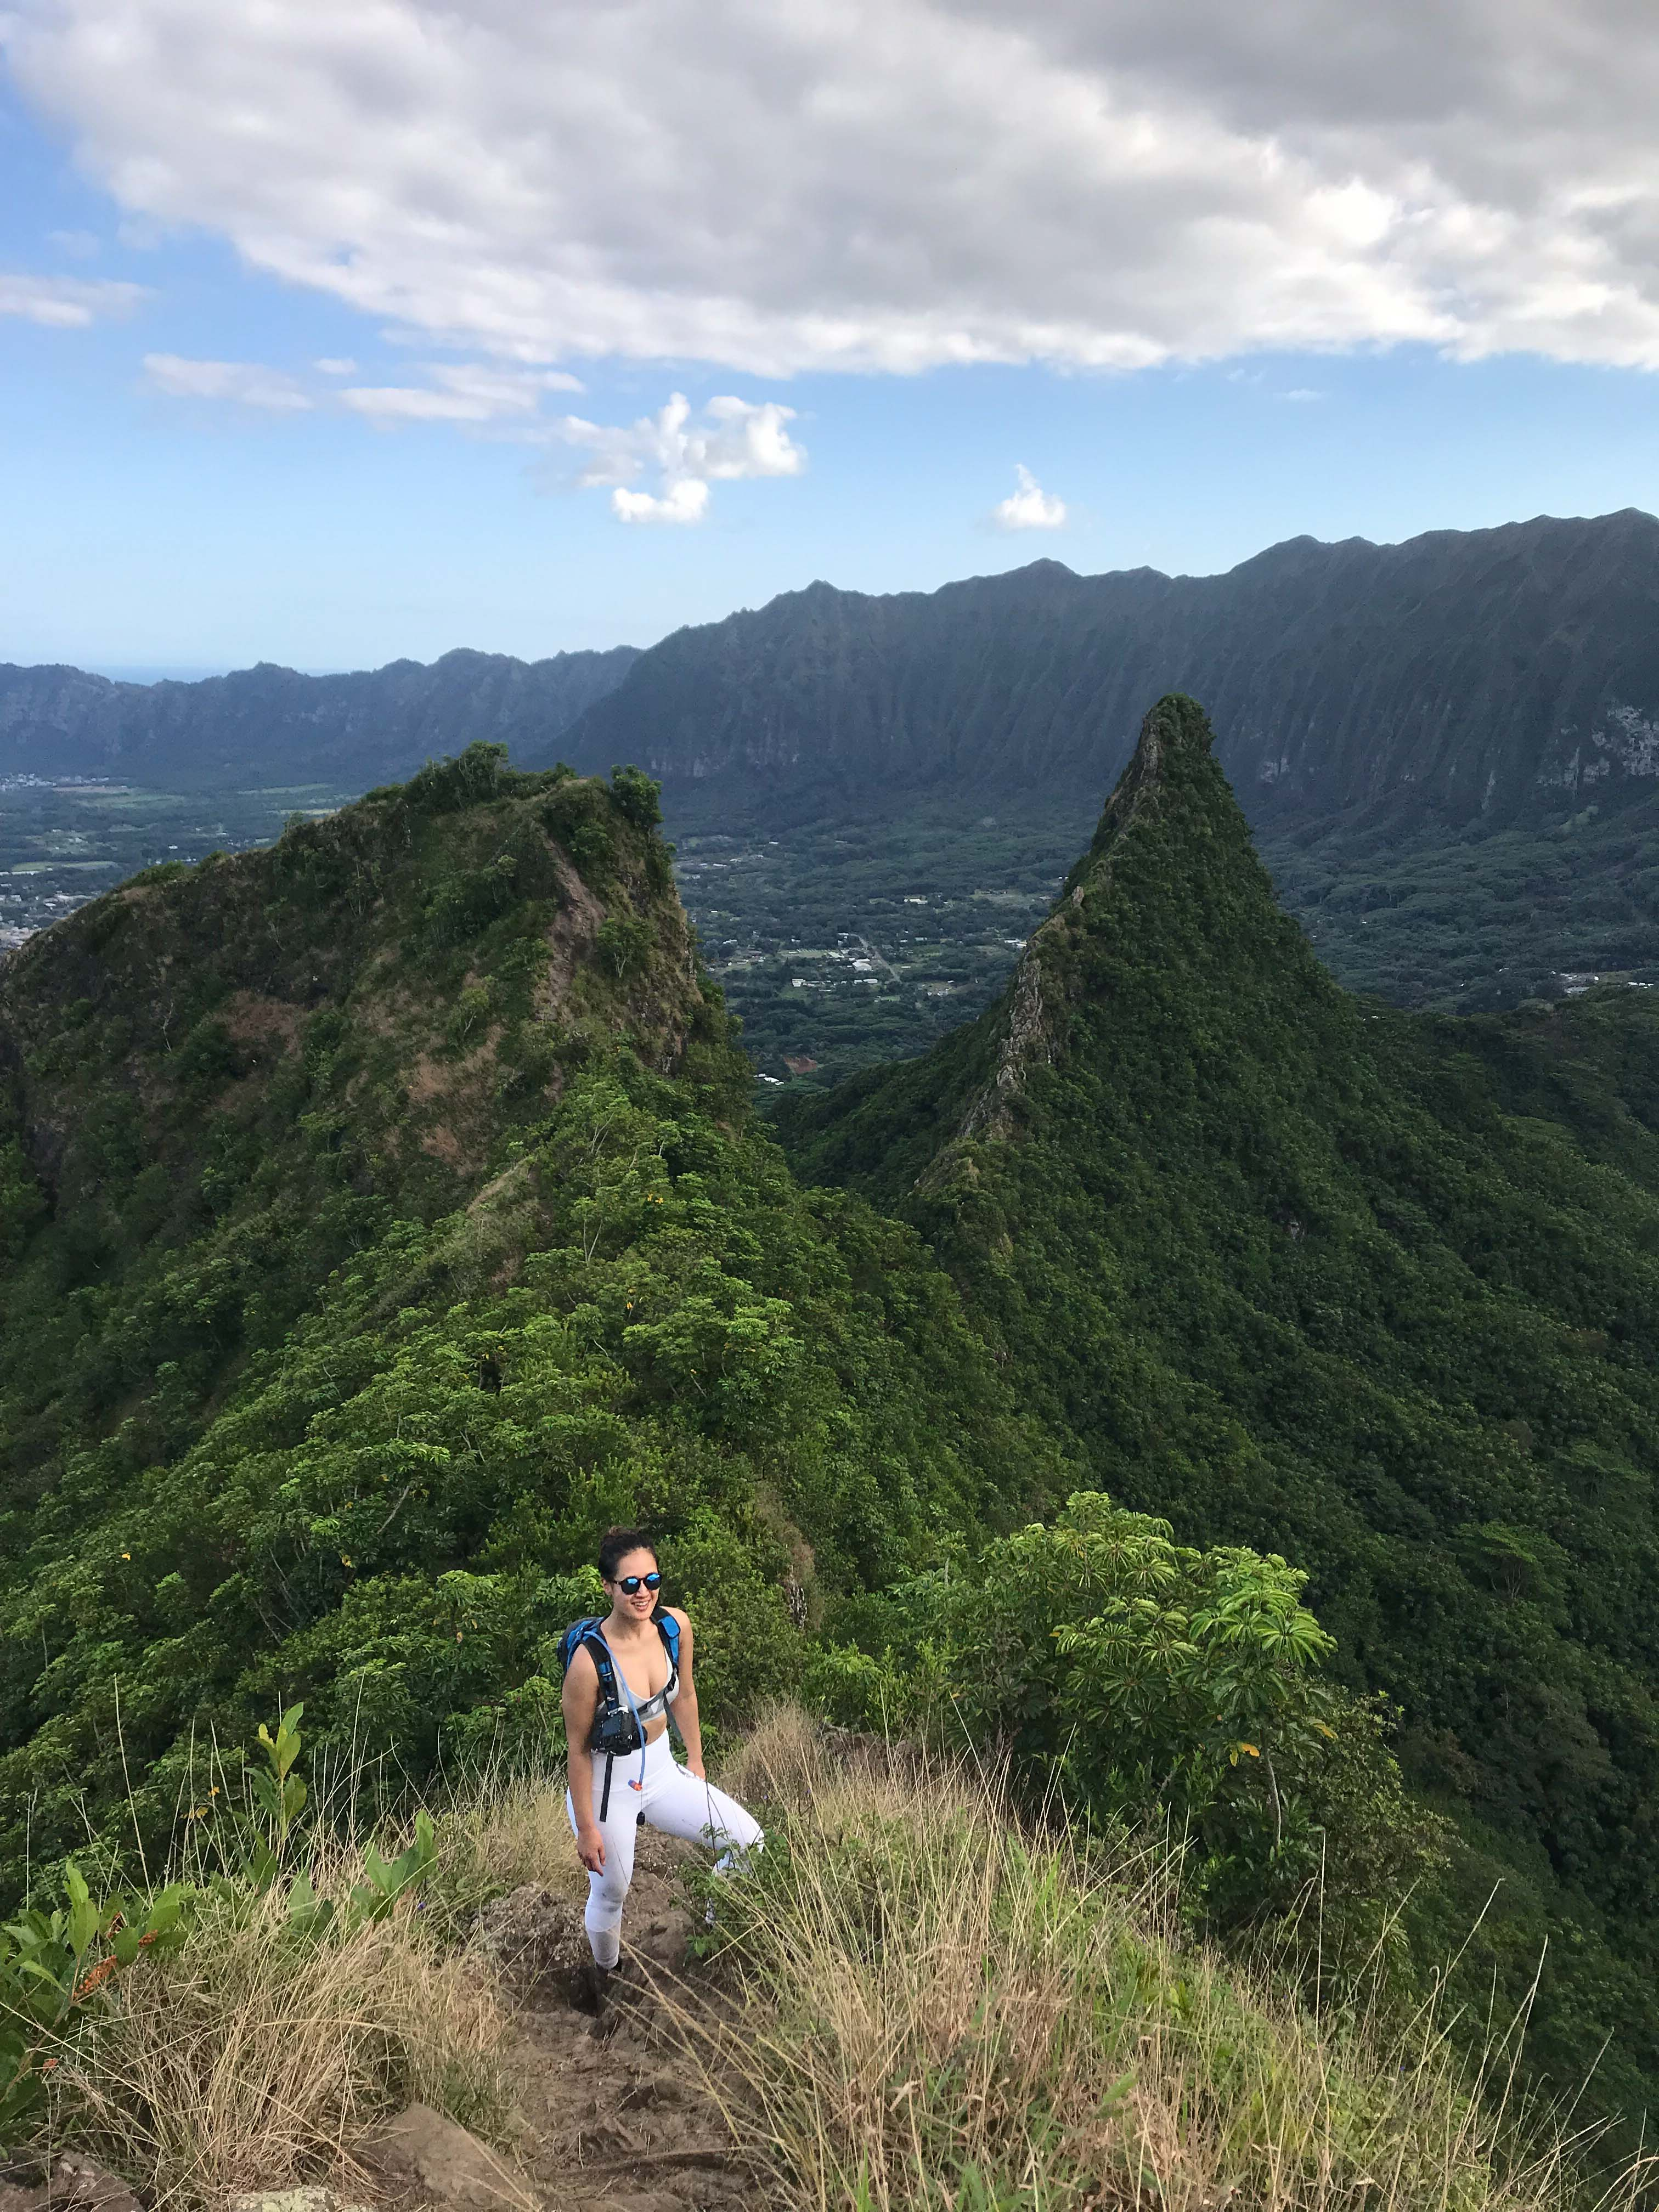 Hikes on Oahu, Hawaii: Olomana Hike - 3 Peaks #camlee